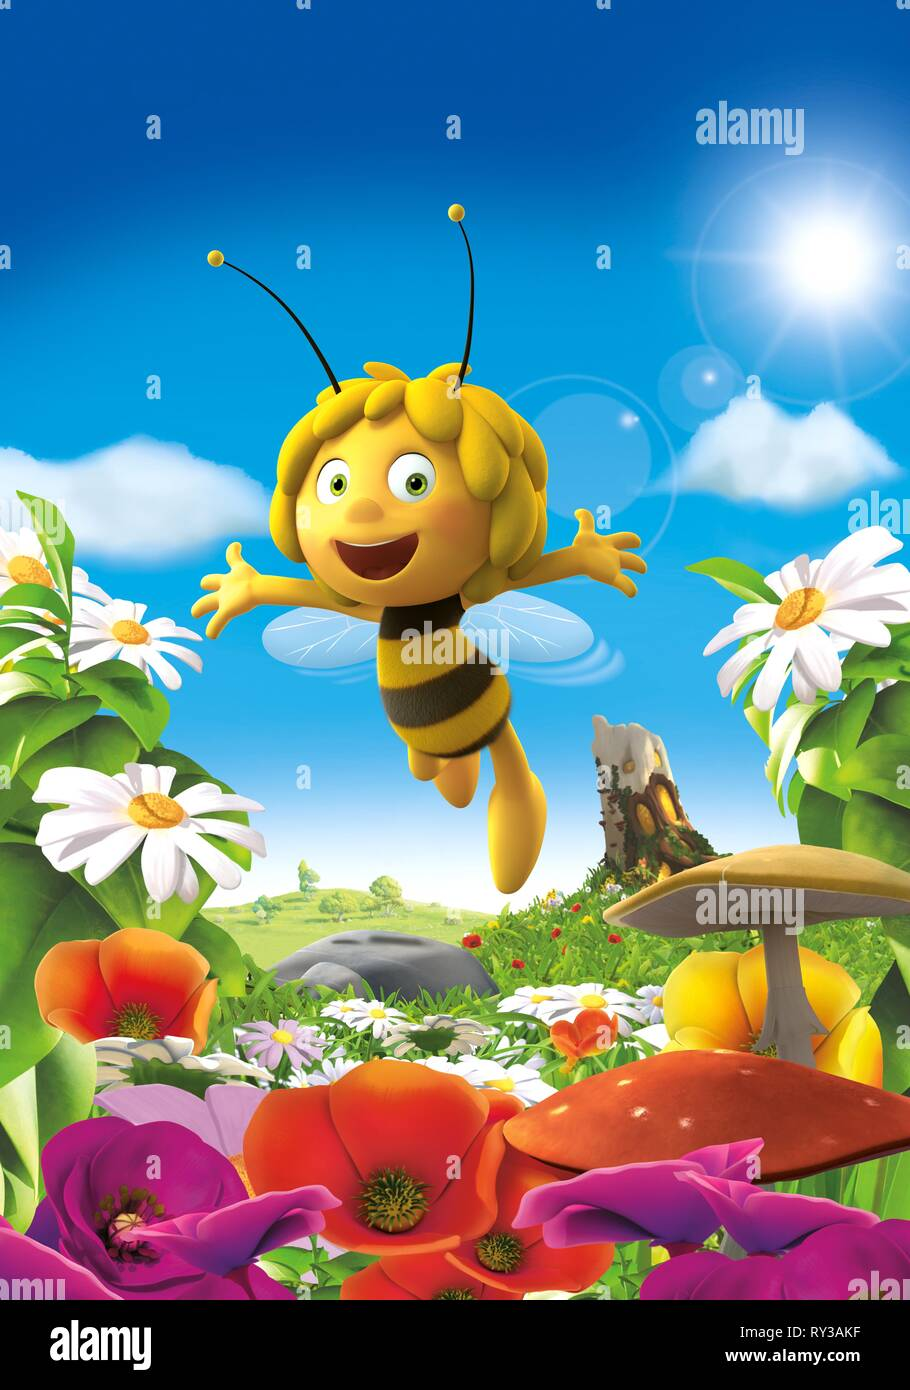 It's just a picture of Lively Maya the Bee Image